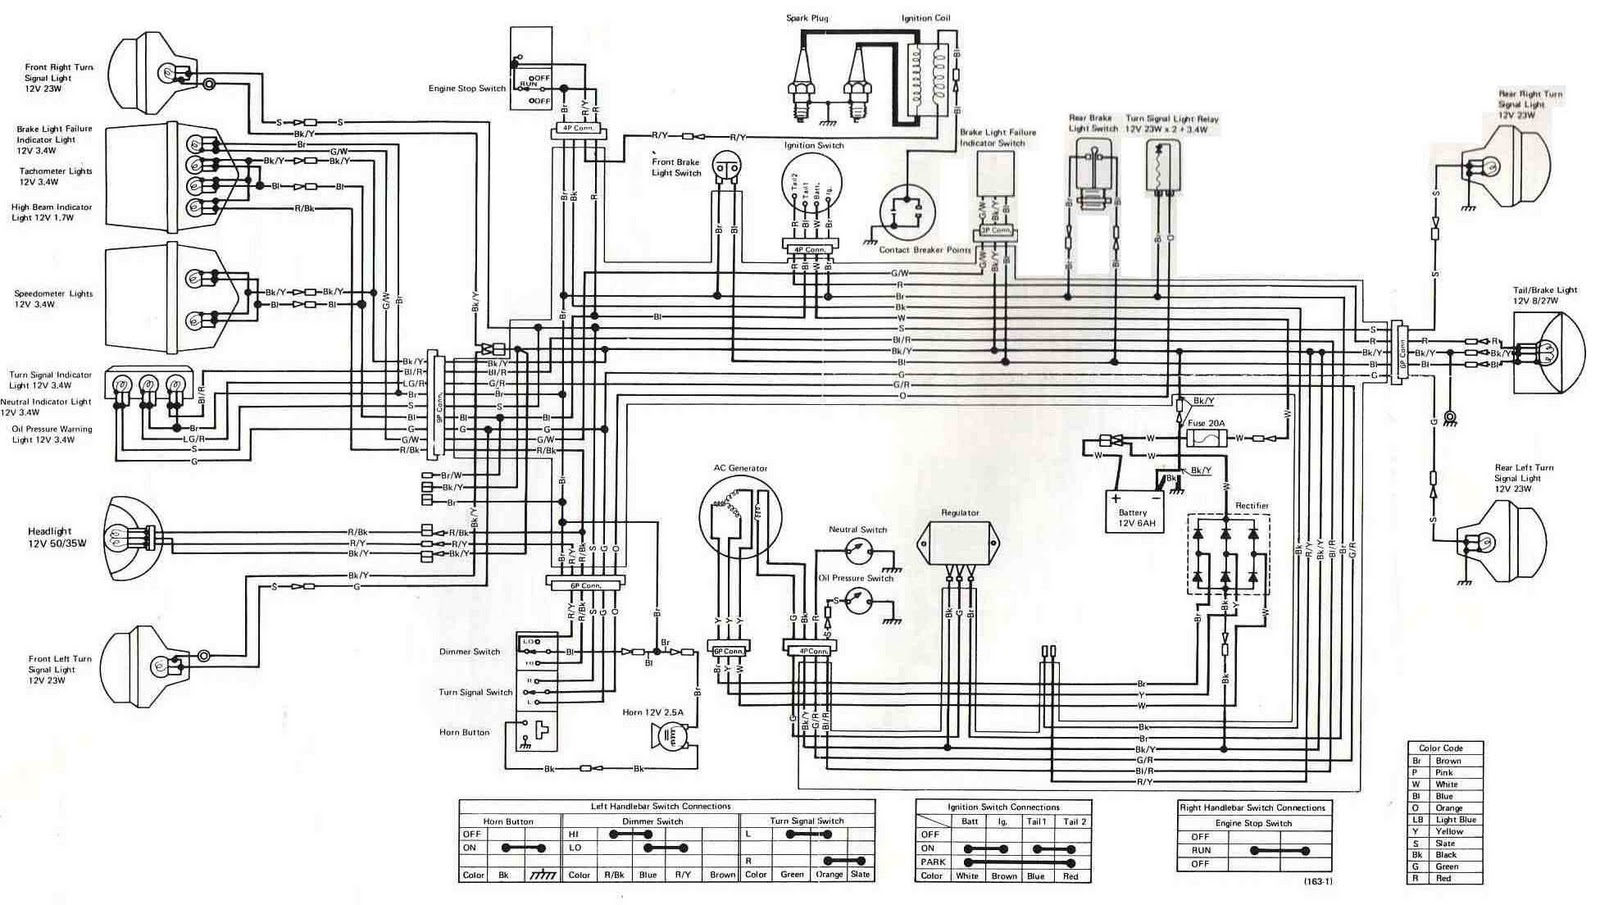 Kawasaki+KZ400+1975+Electrical+Wiring+Diagram kawasaki wiring diagram free toyota wiring diagrams \u2022 wiring kawasaki mule 600 wiring diagram at creativeand.co